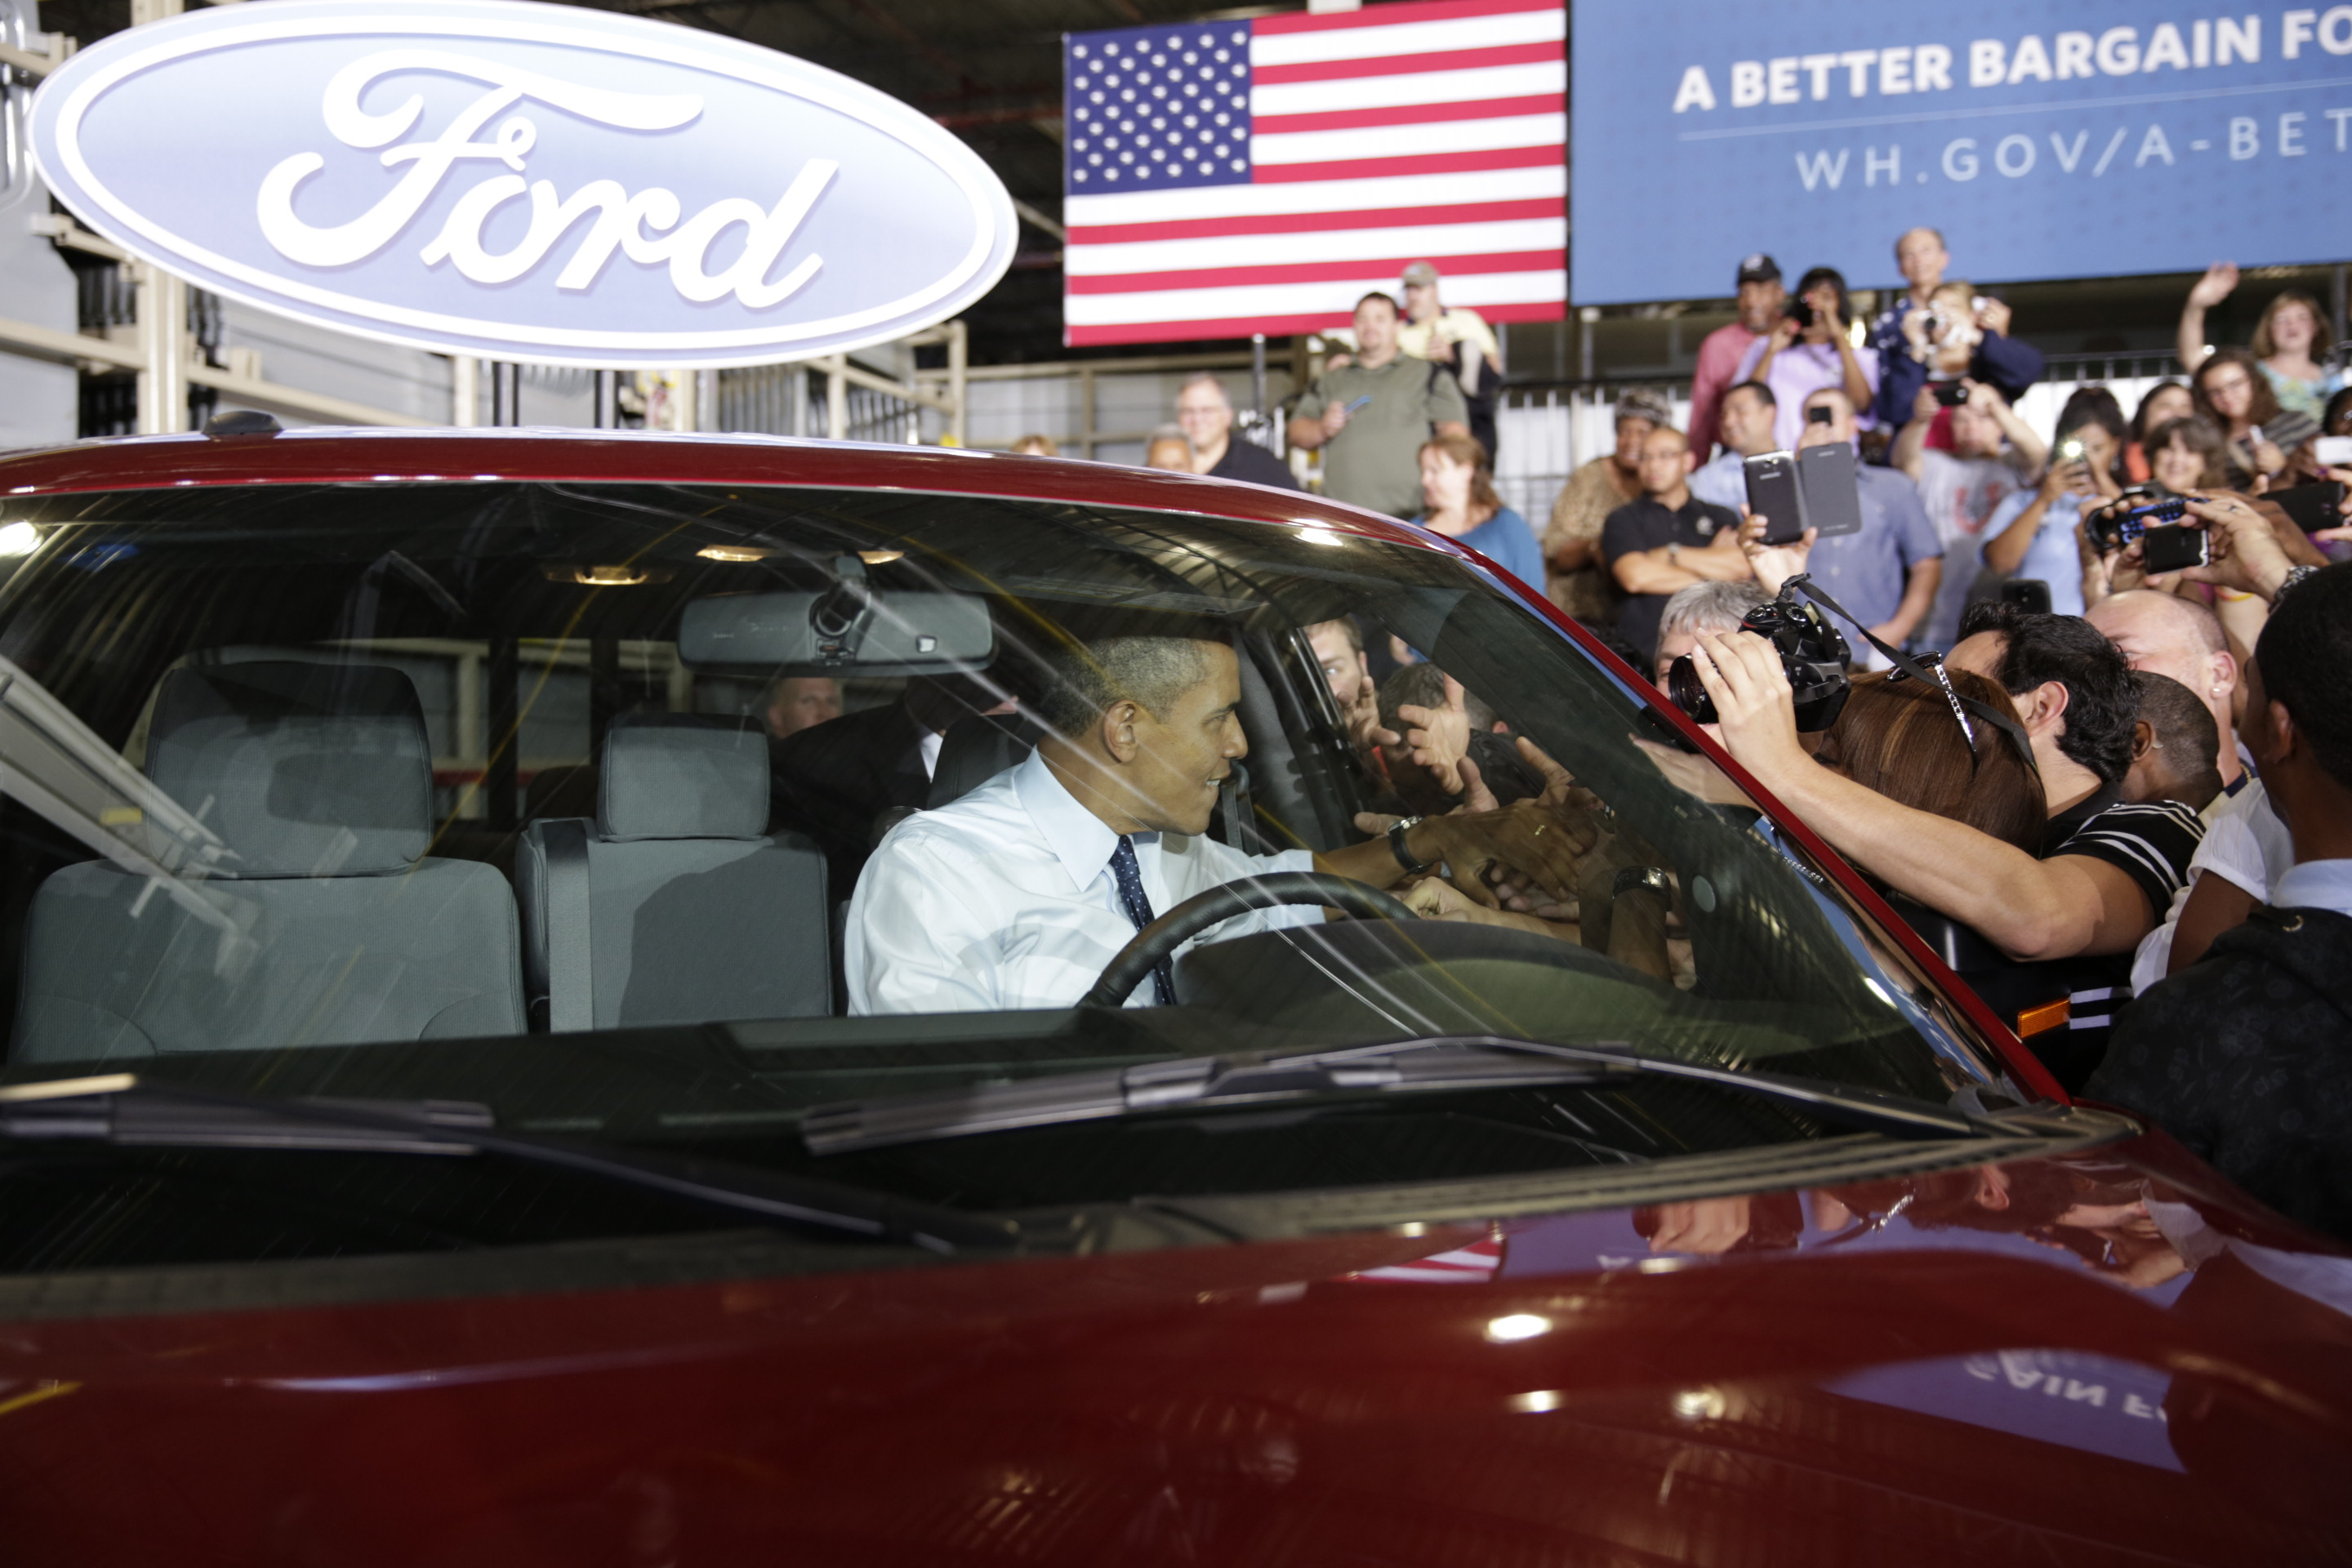 President Barack Obama greets Ford employees from the driver's seat of a Ford truck after delivering remarks on the economy at the Ford Kansas City Stamping Plant